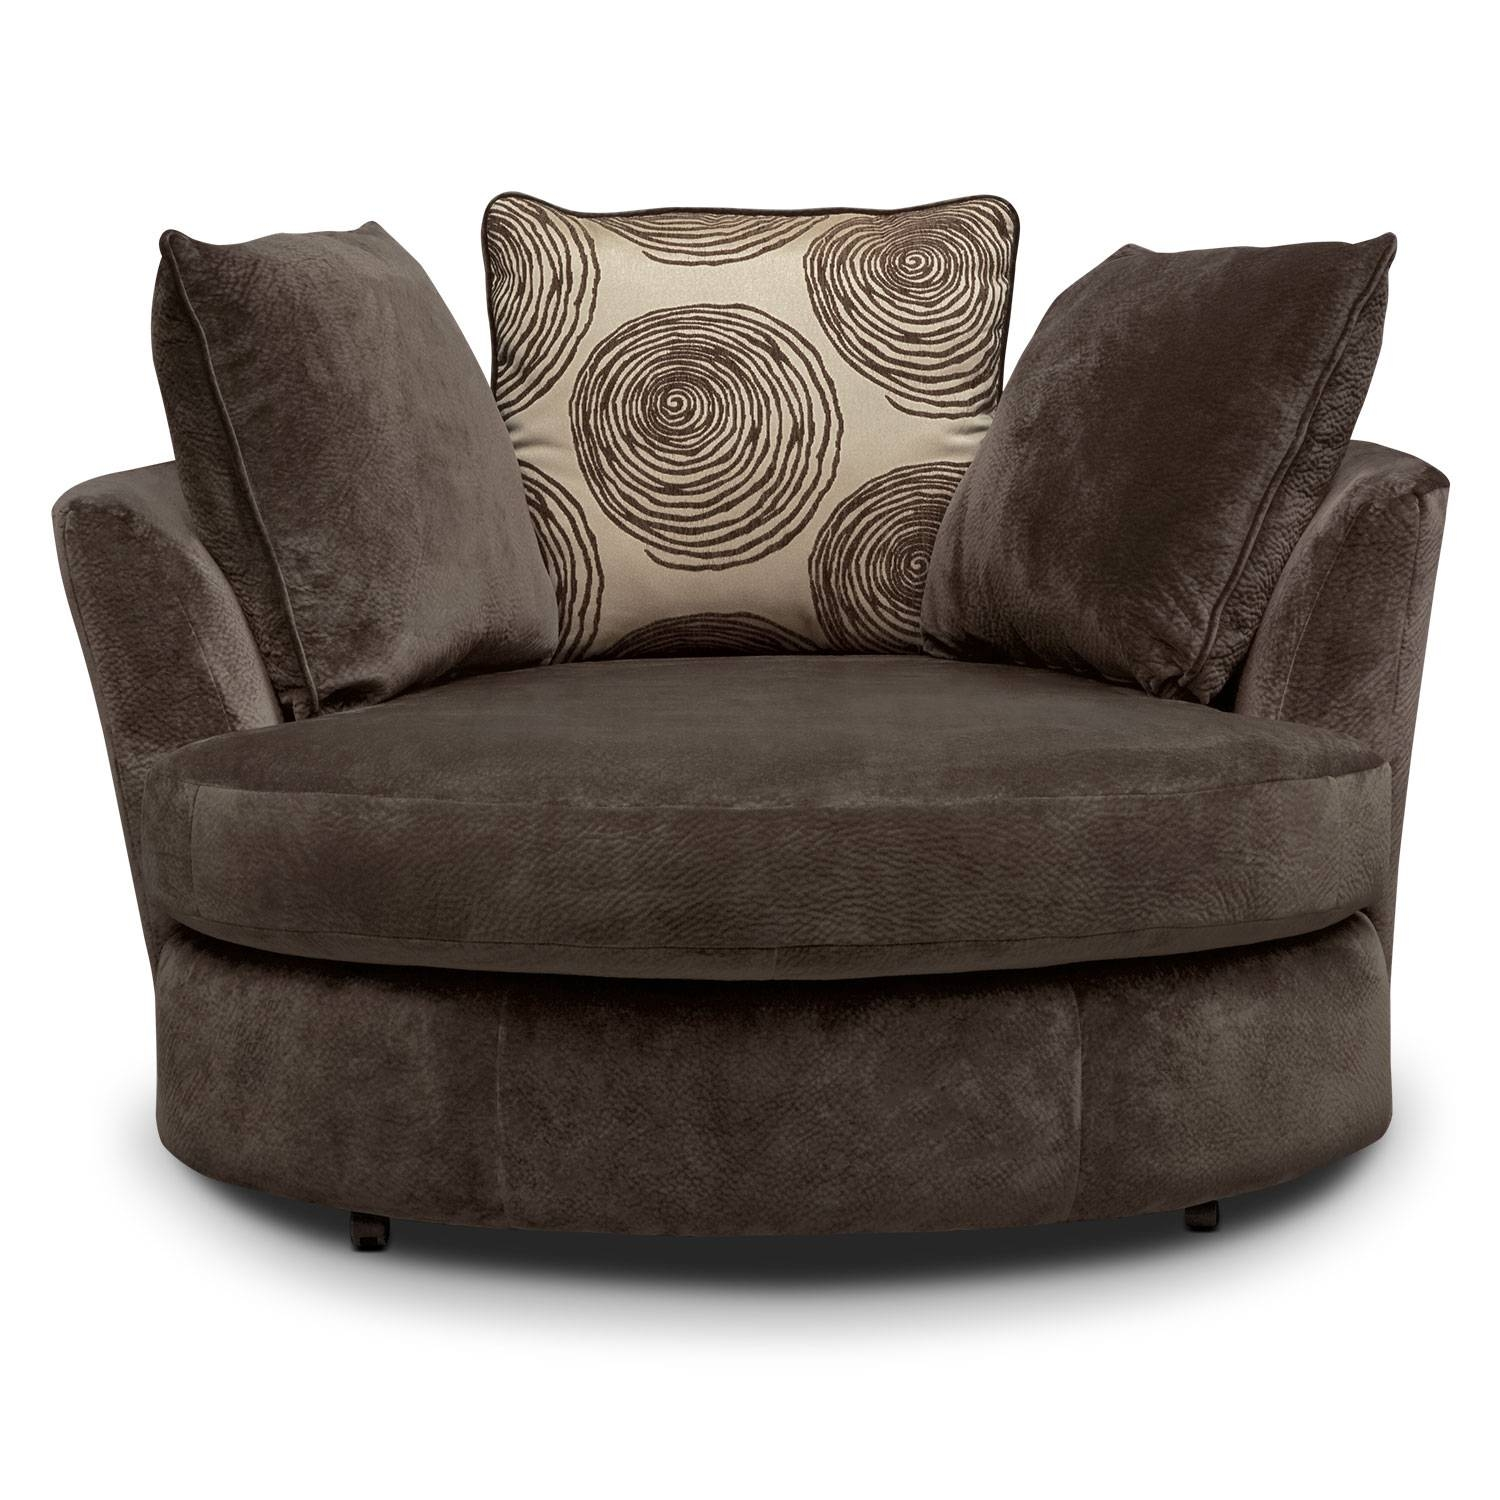 Sofas Center : Swivel Sofa Chair Formidable Picture Concept Living intended for Spinning Sofa Chairs (Image 25 of 30)